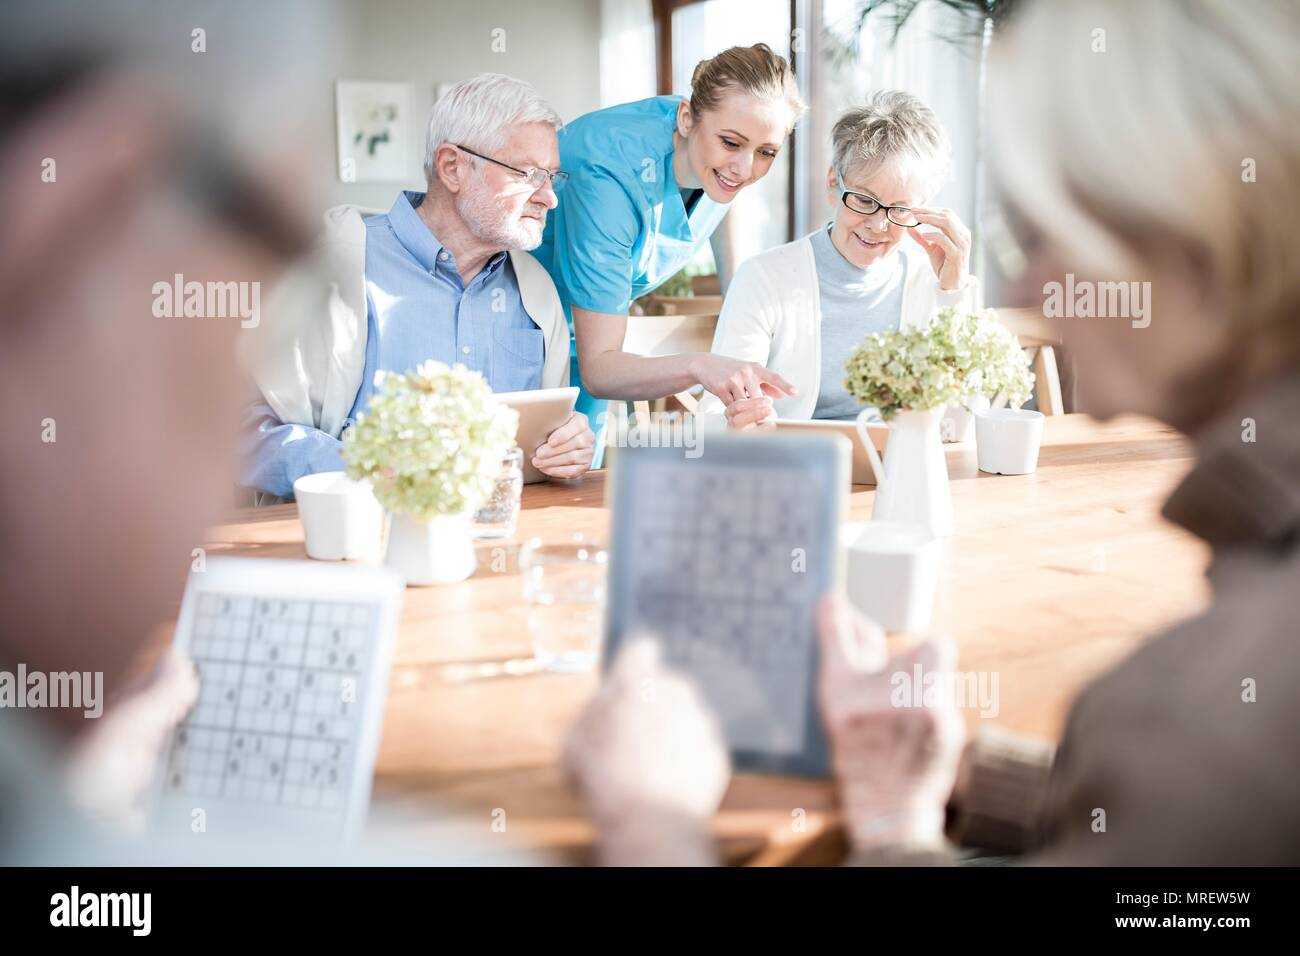 Senior adults playing games on digital tablets in care home. - Stock Image